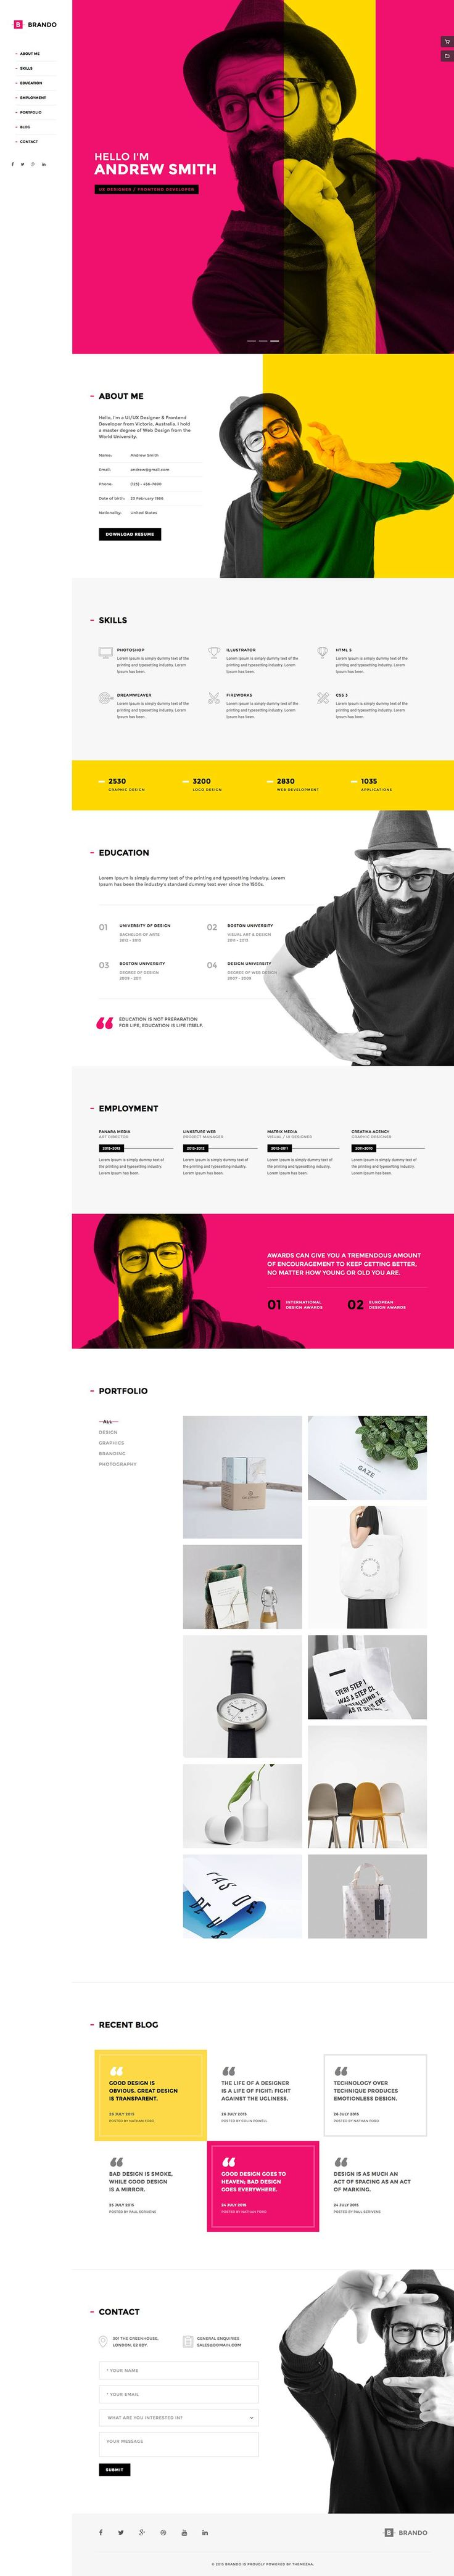 A very clean designed HTML5 Bootstrap template for landingpages and other onepager. Comes with eight premade layouts and four extra pages plus some additional build-in scripts (parallax, progress bars, ajax form validation, contact form etc.)